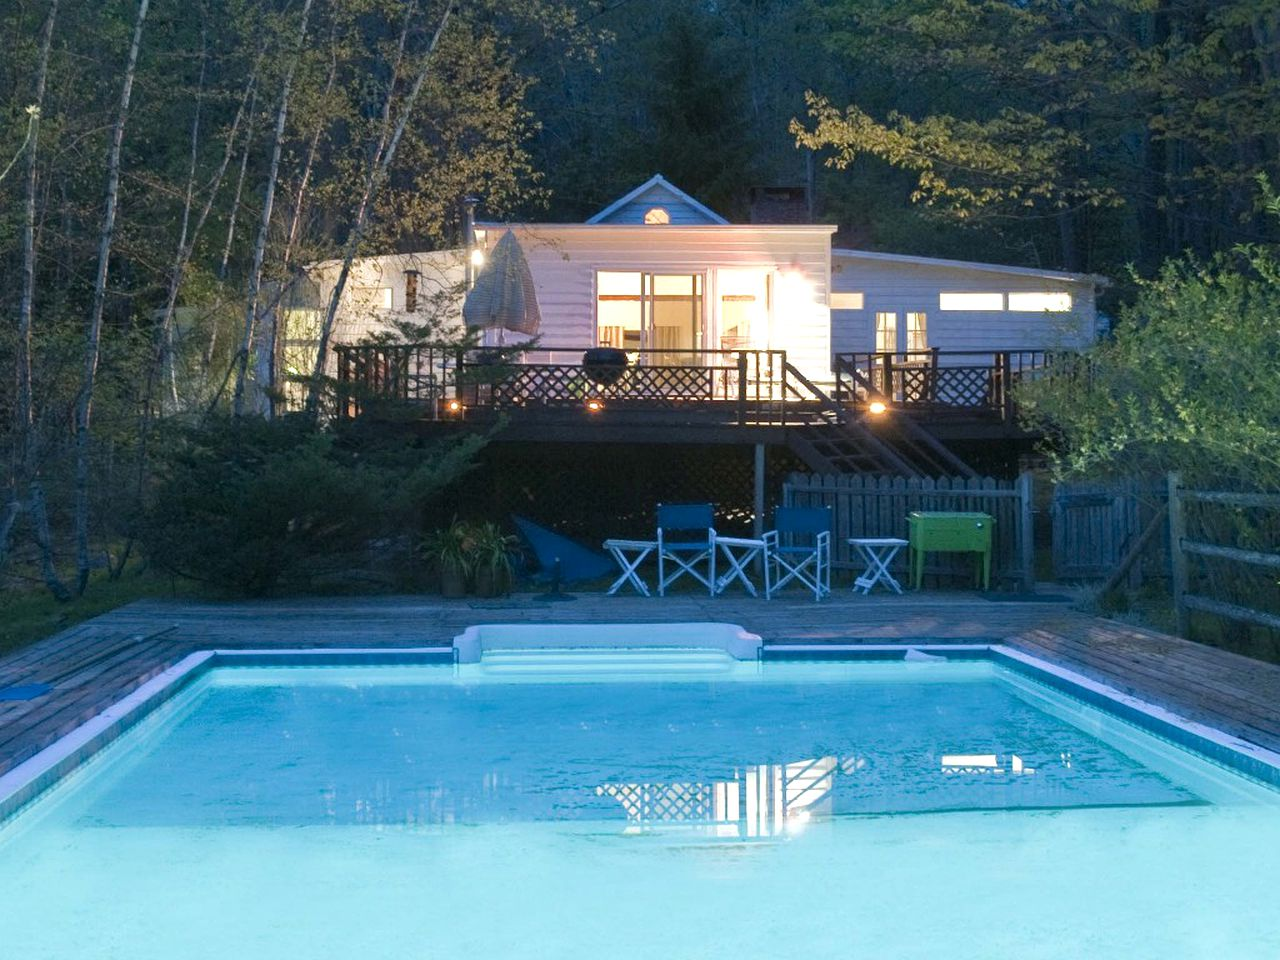 Jacuzzi Pool Deluxe Deluxe Cottage With Private Outdoor Pool And Jacuzzi In Woodstock New York